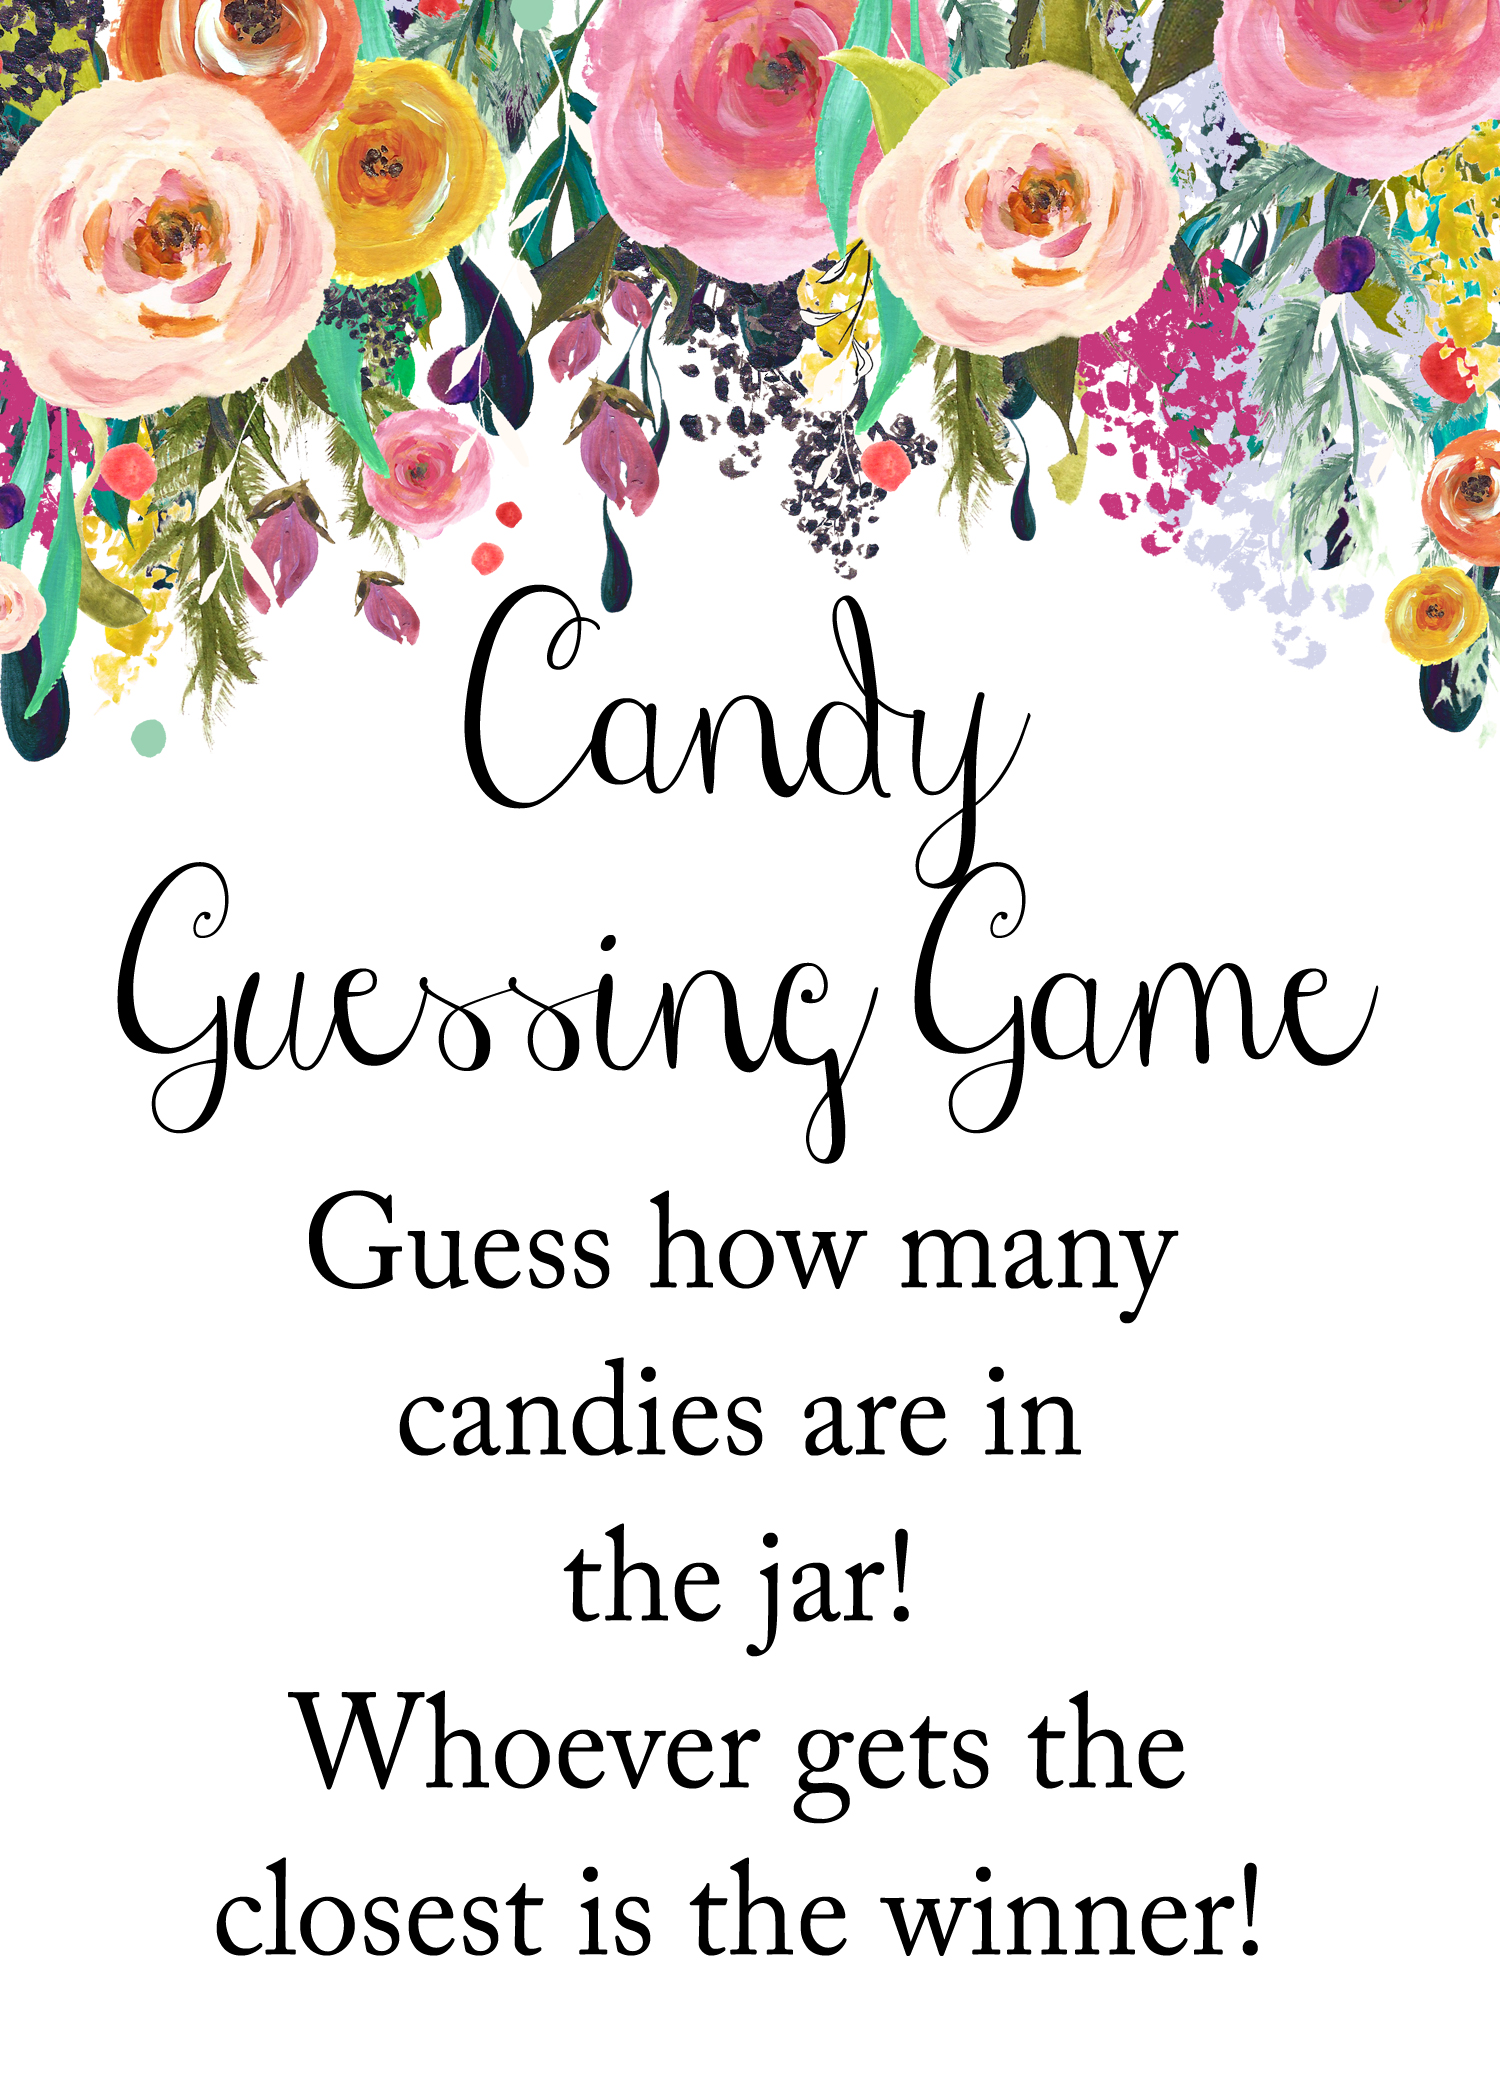 photograph relating to Guess How Many in the Jar Printable named wager-how-innumerable-candies-jar-indicator.jpg - Magical Printable